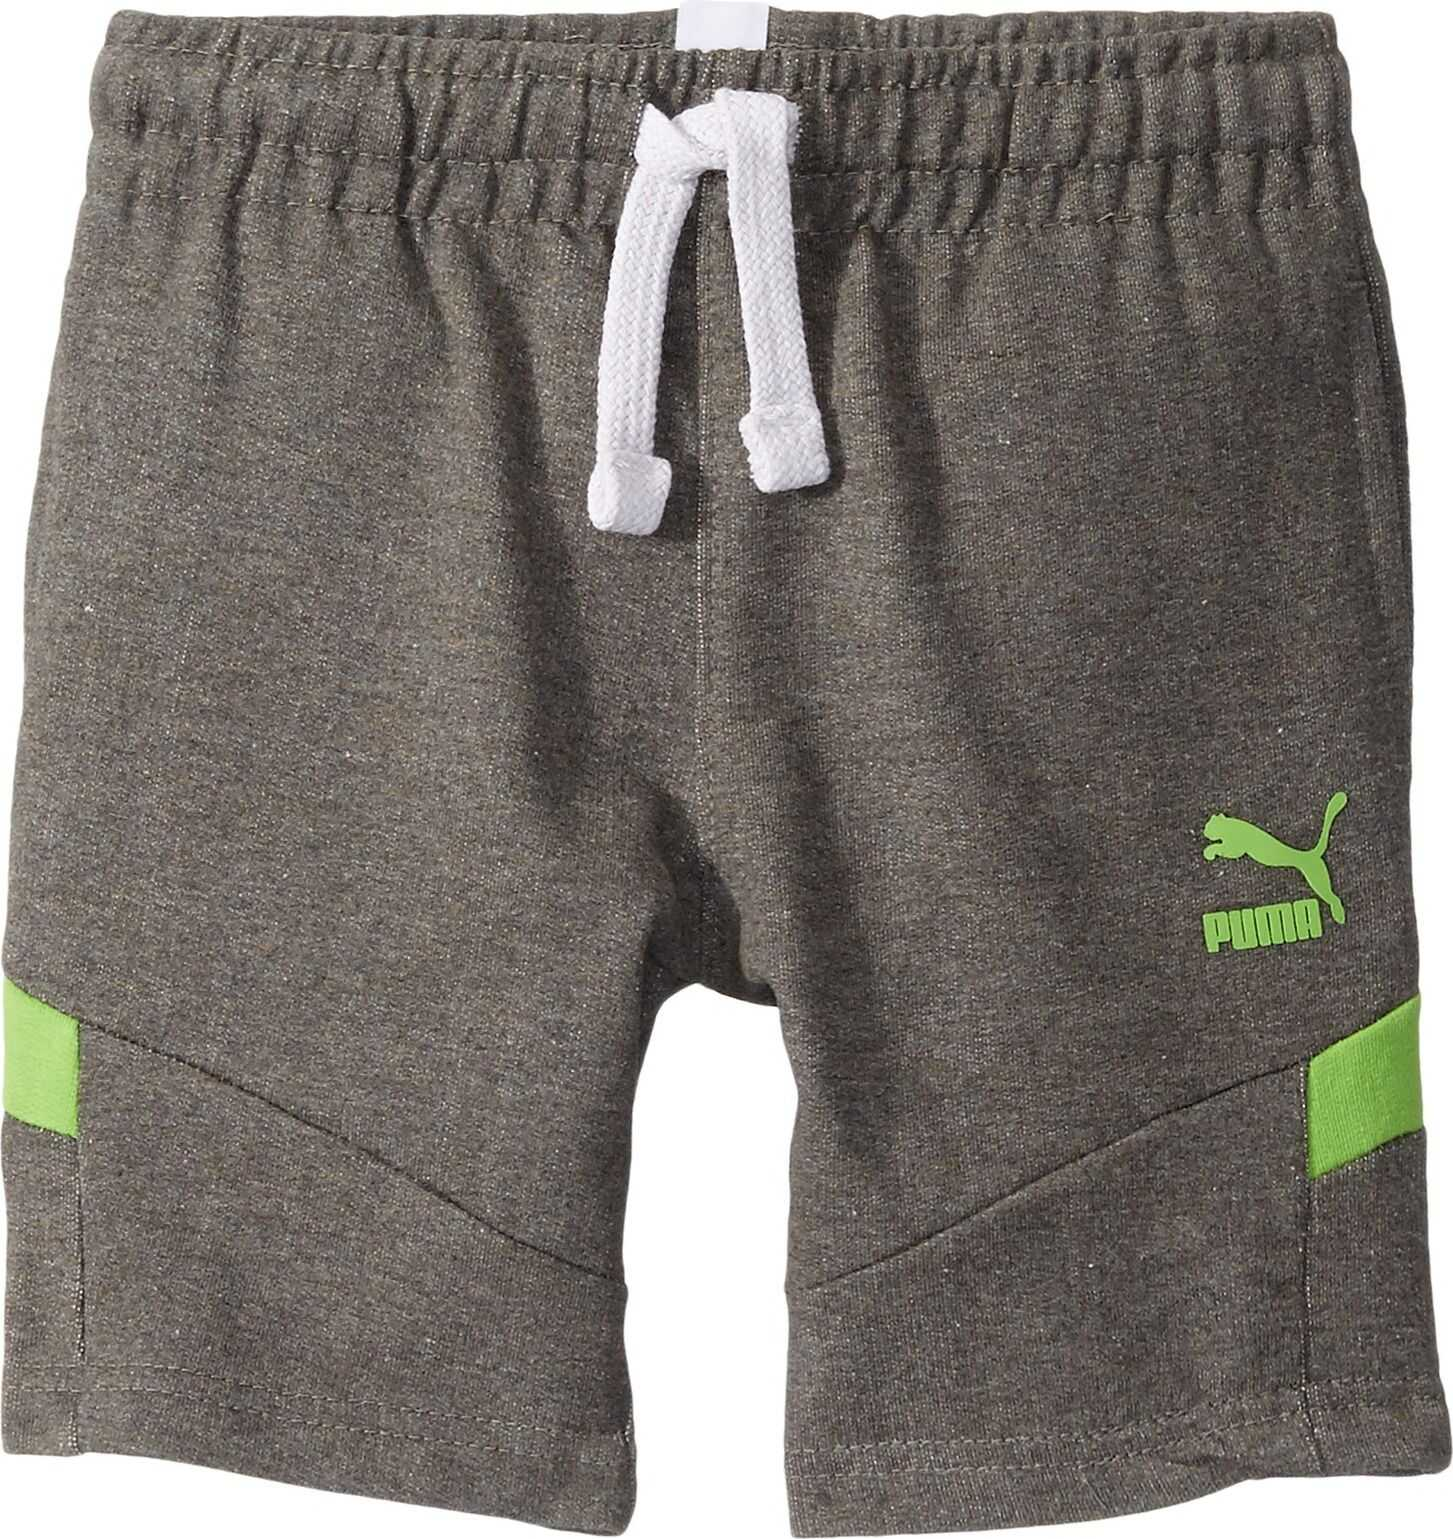 French Terry Iconix Shorts (Little Kids/Big Kids)